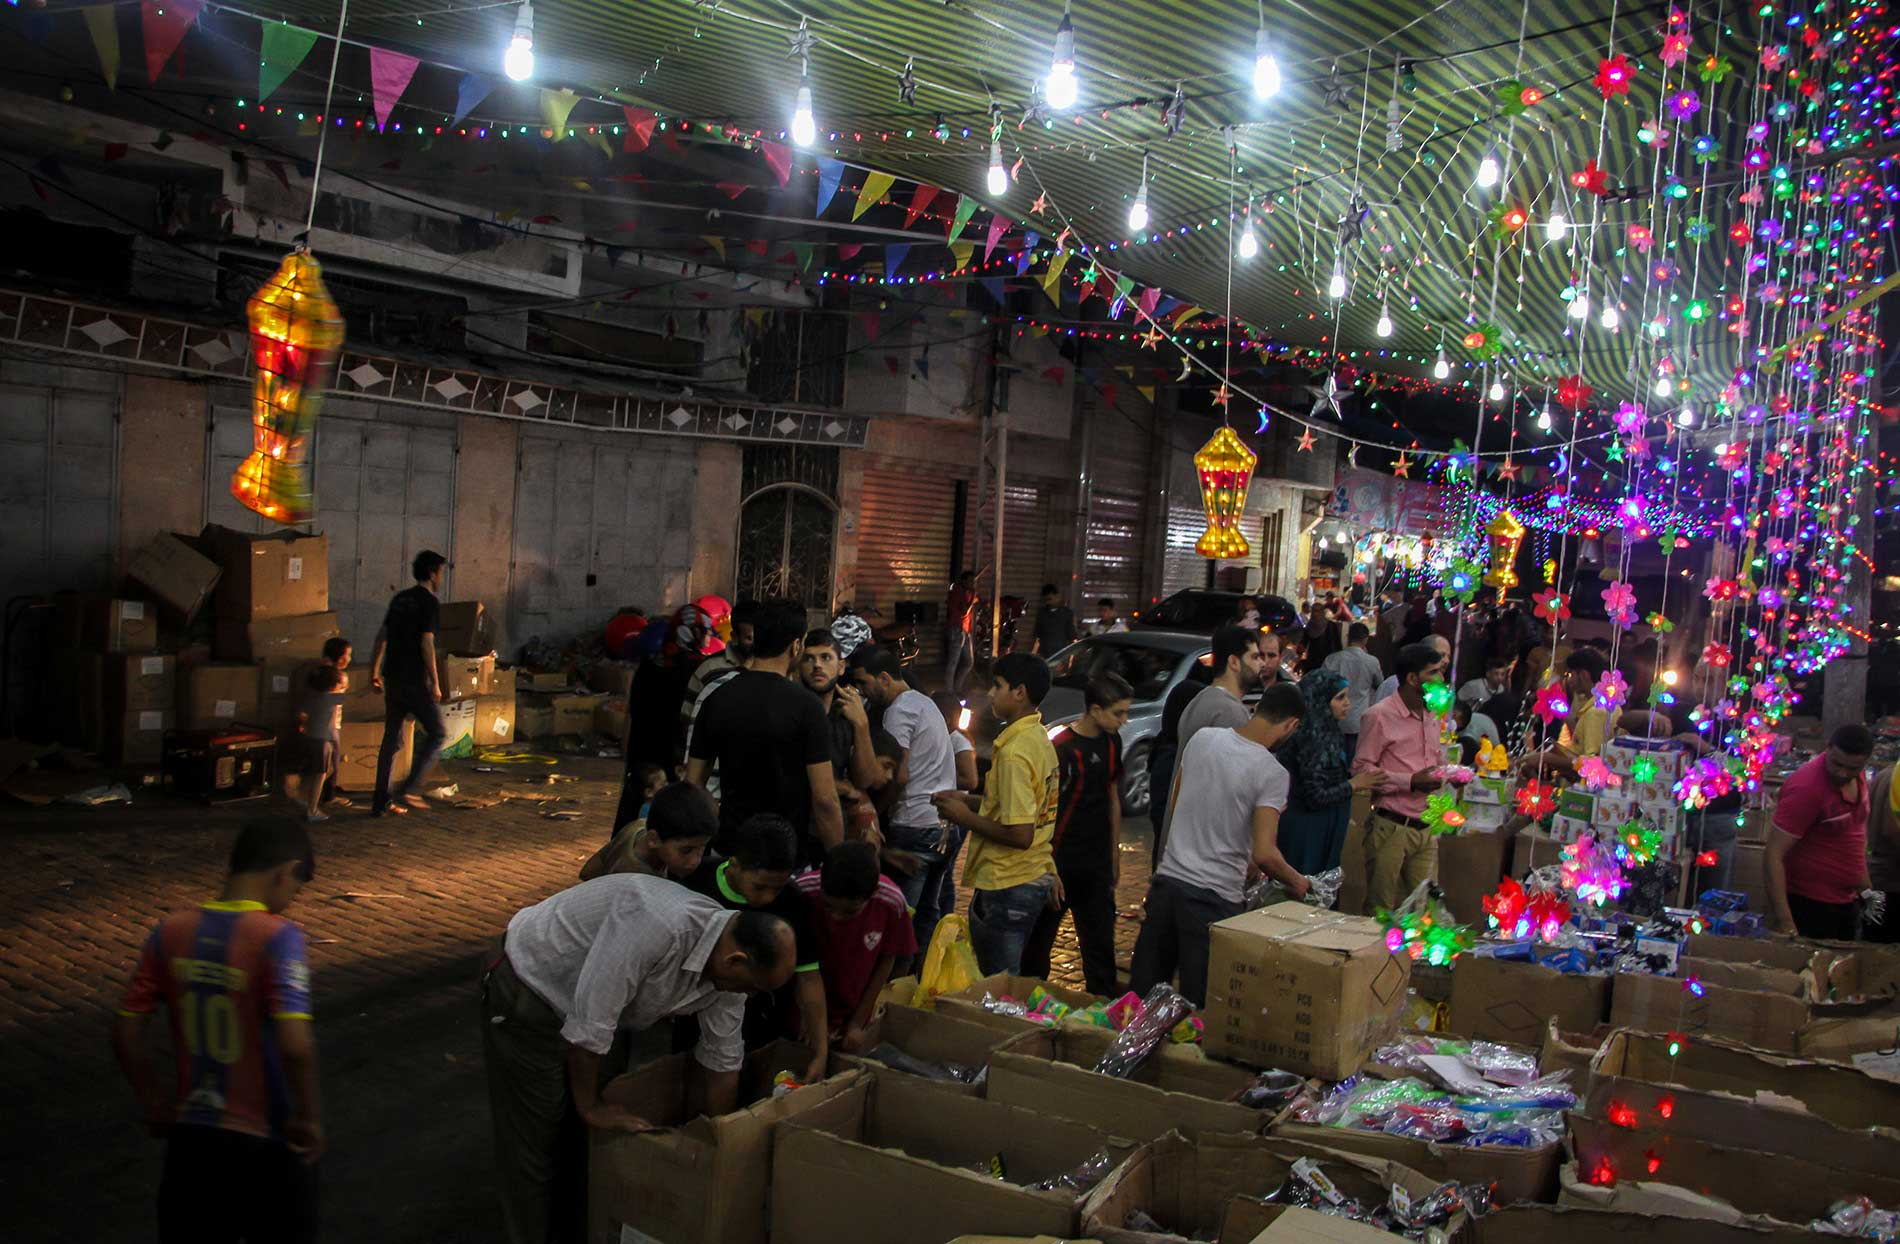 RAMADAN NIGHT IN GAZA 2016 Ramadan, a holy month for Muslims, a month of fasting and a month of nighttime celebrations.